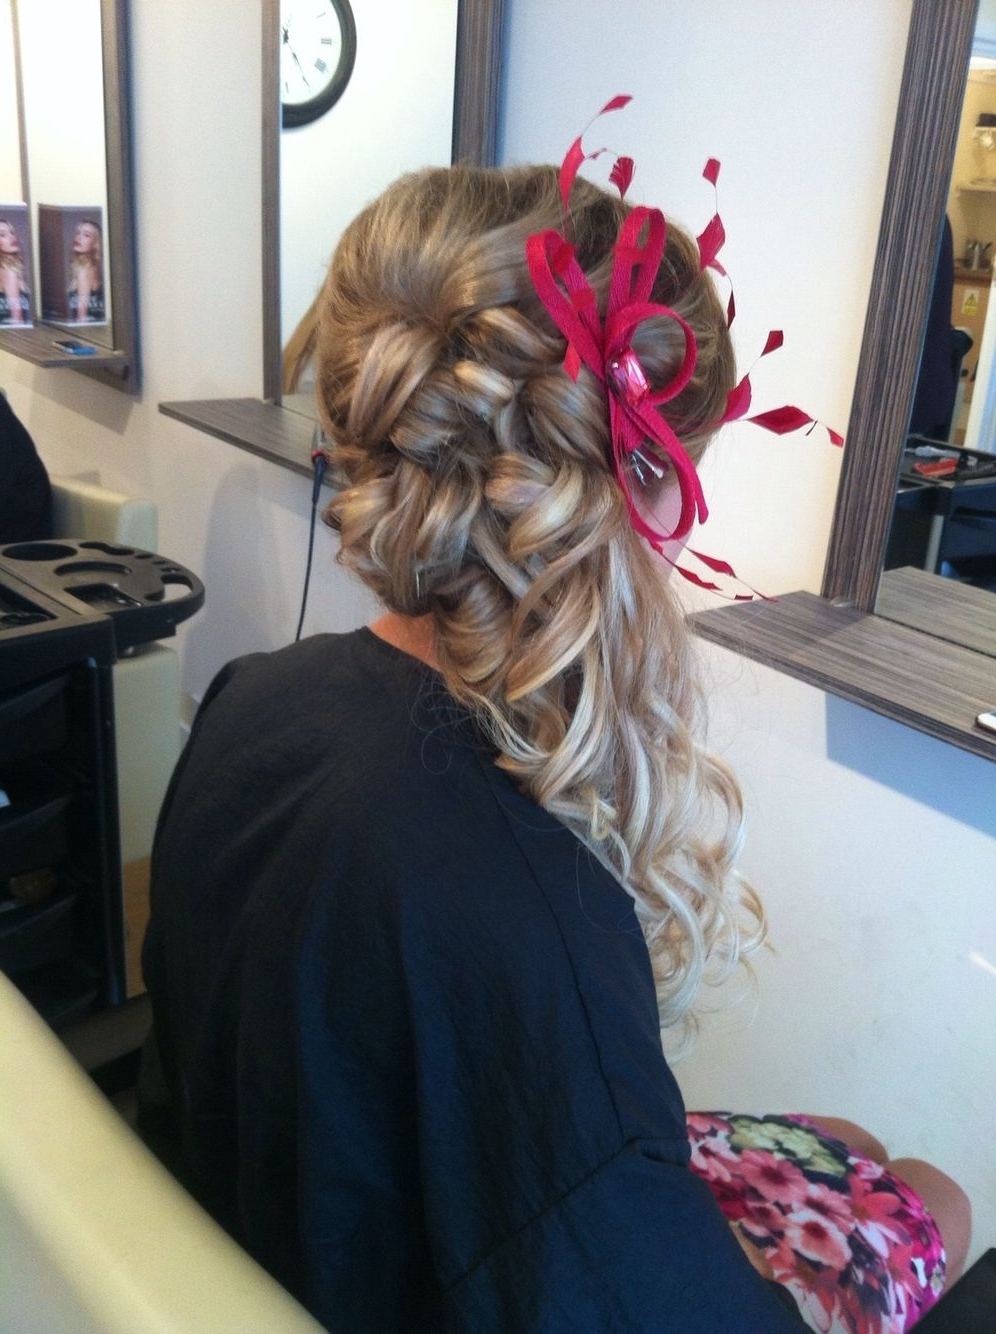 Trendy Wedding Guest Hairstyles For Long Hair With Fascinator With Wedding Guest Hair, Updo, Fascinator, Long Hair (View 4 of 15)